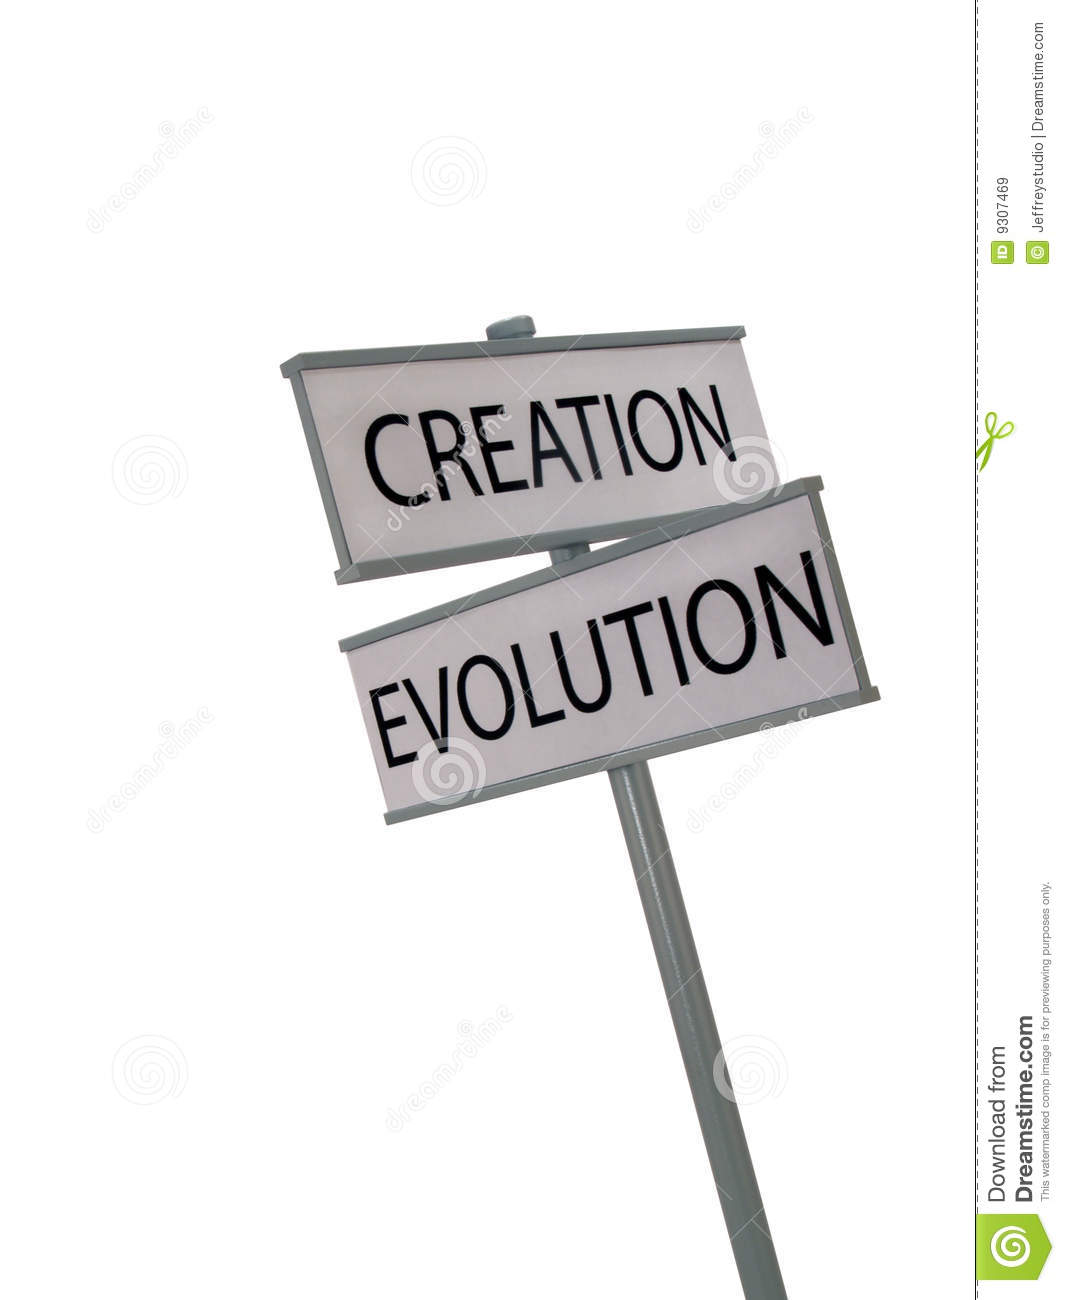 argumentative essay on creation vs evolution You are welcome to read the creation vs evolution essay dover town was divided there are those people who accepted charles darwins theory of ev.